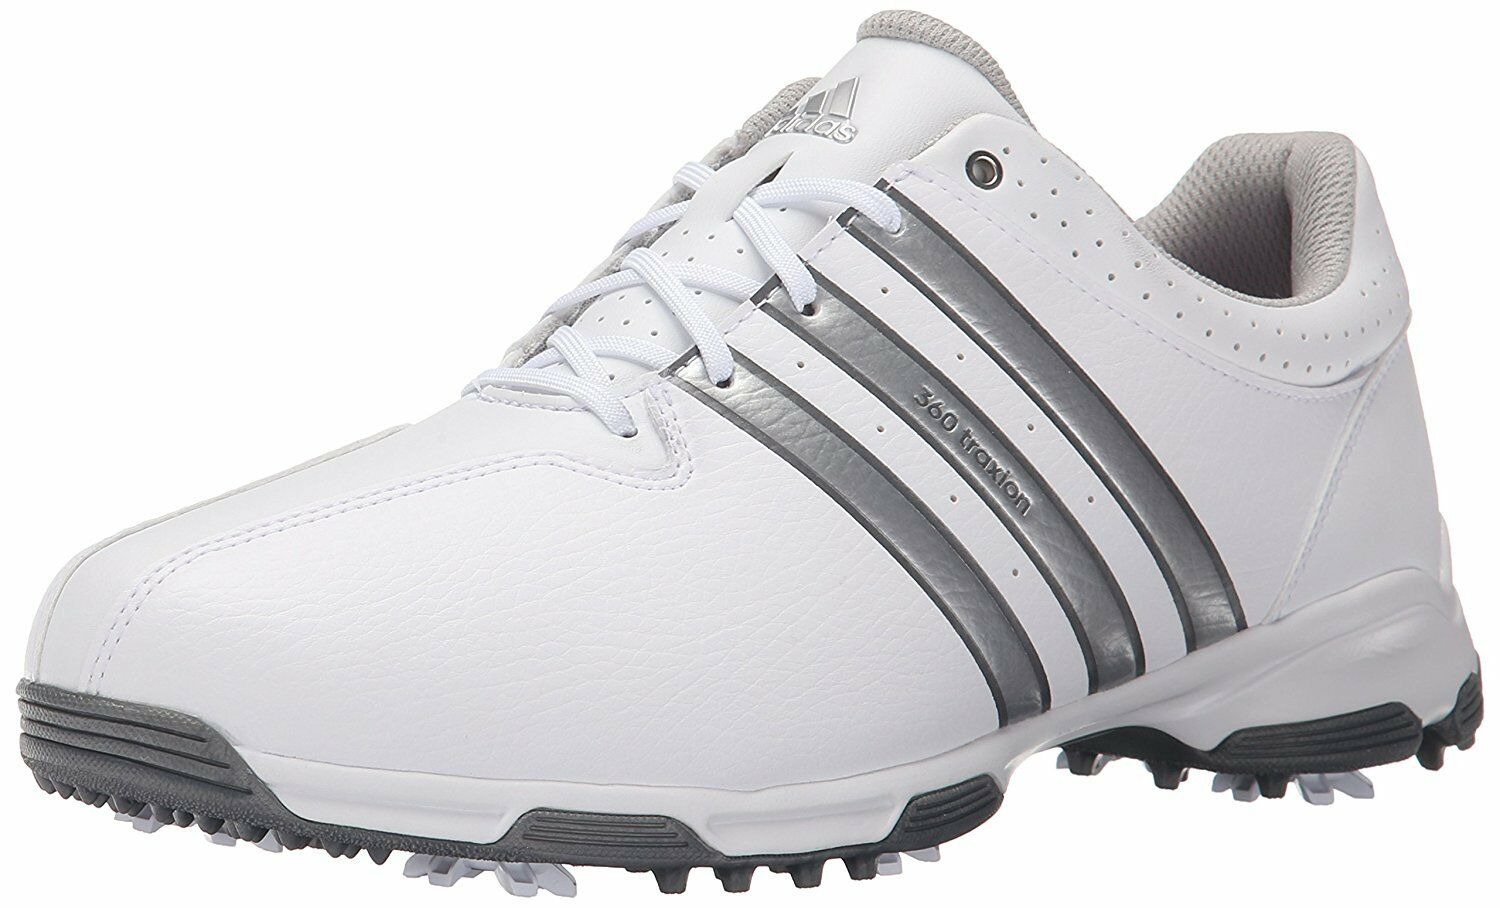 Adidas golf 360 traxion Uomo nwp-m Uomo traxion traxion nwp cleated - scegliere sz / colore. a0c636